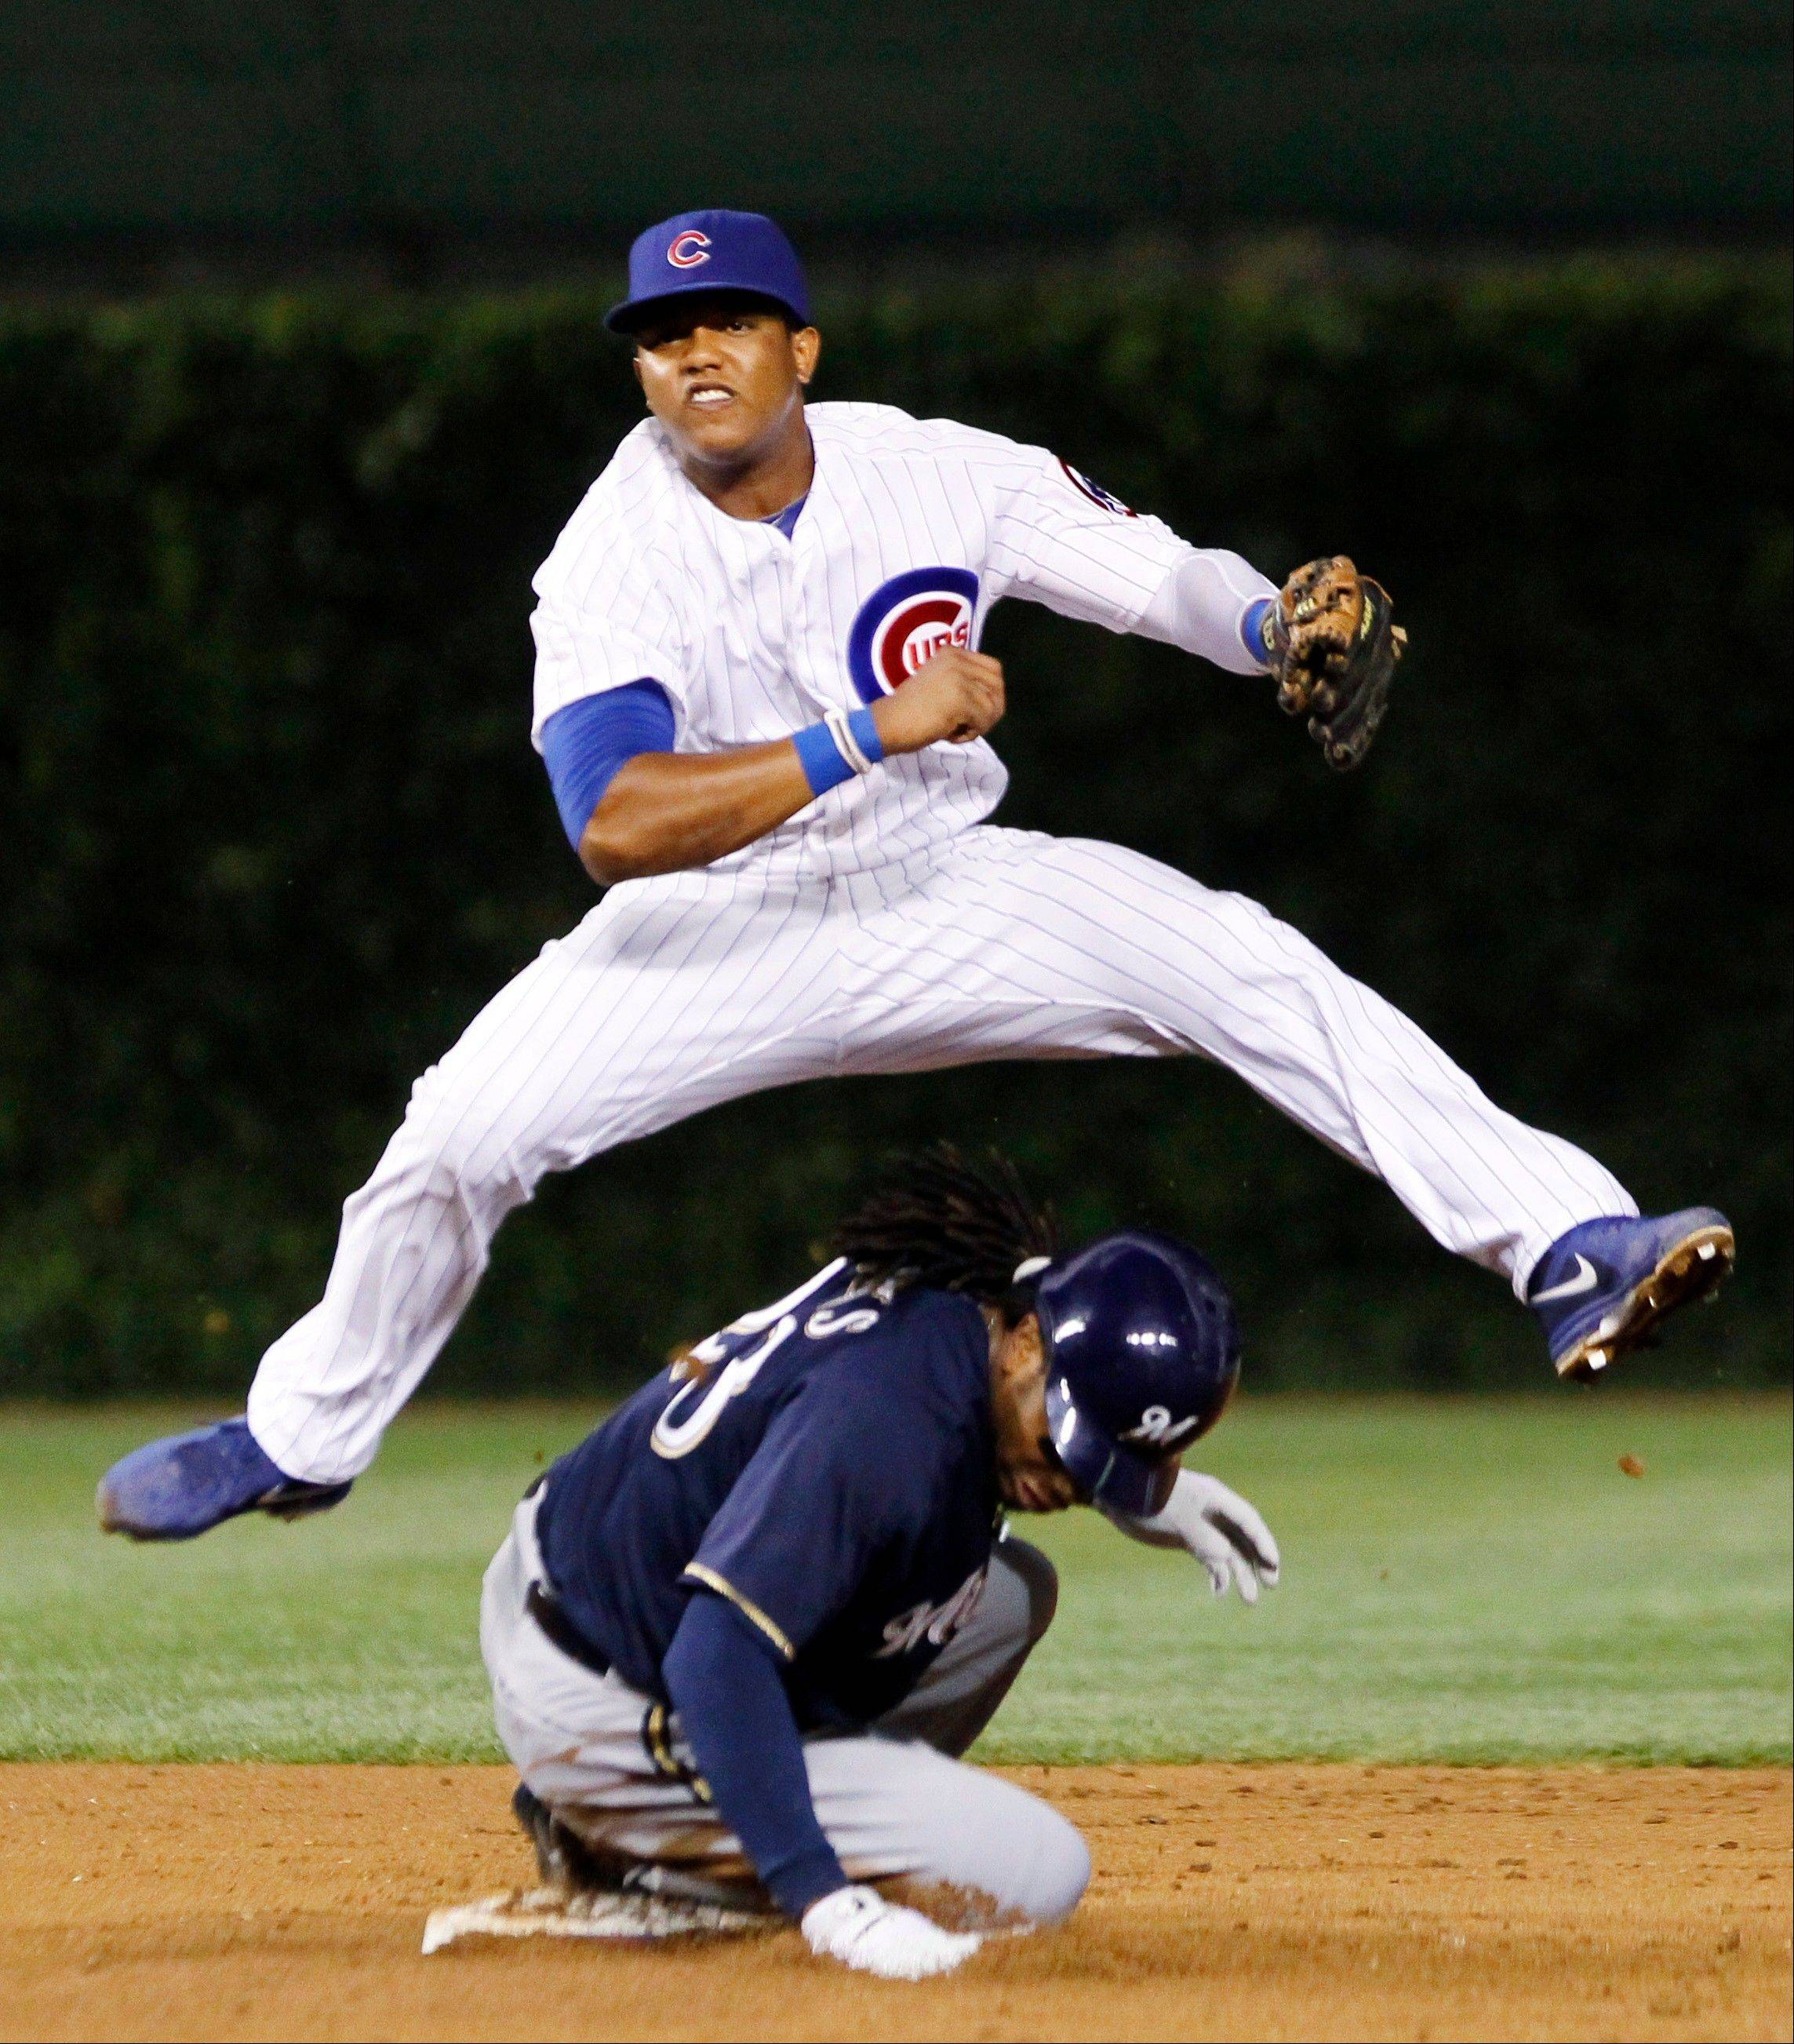 Cubs shortstop Starlin Castro begins a double play, forcing the Milwaukee Brewers' Rickie Weeks at second and getting Ryan Braun at first during the third inning Monday at Wrigley Field.